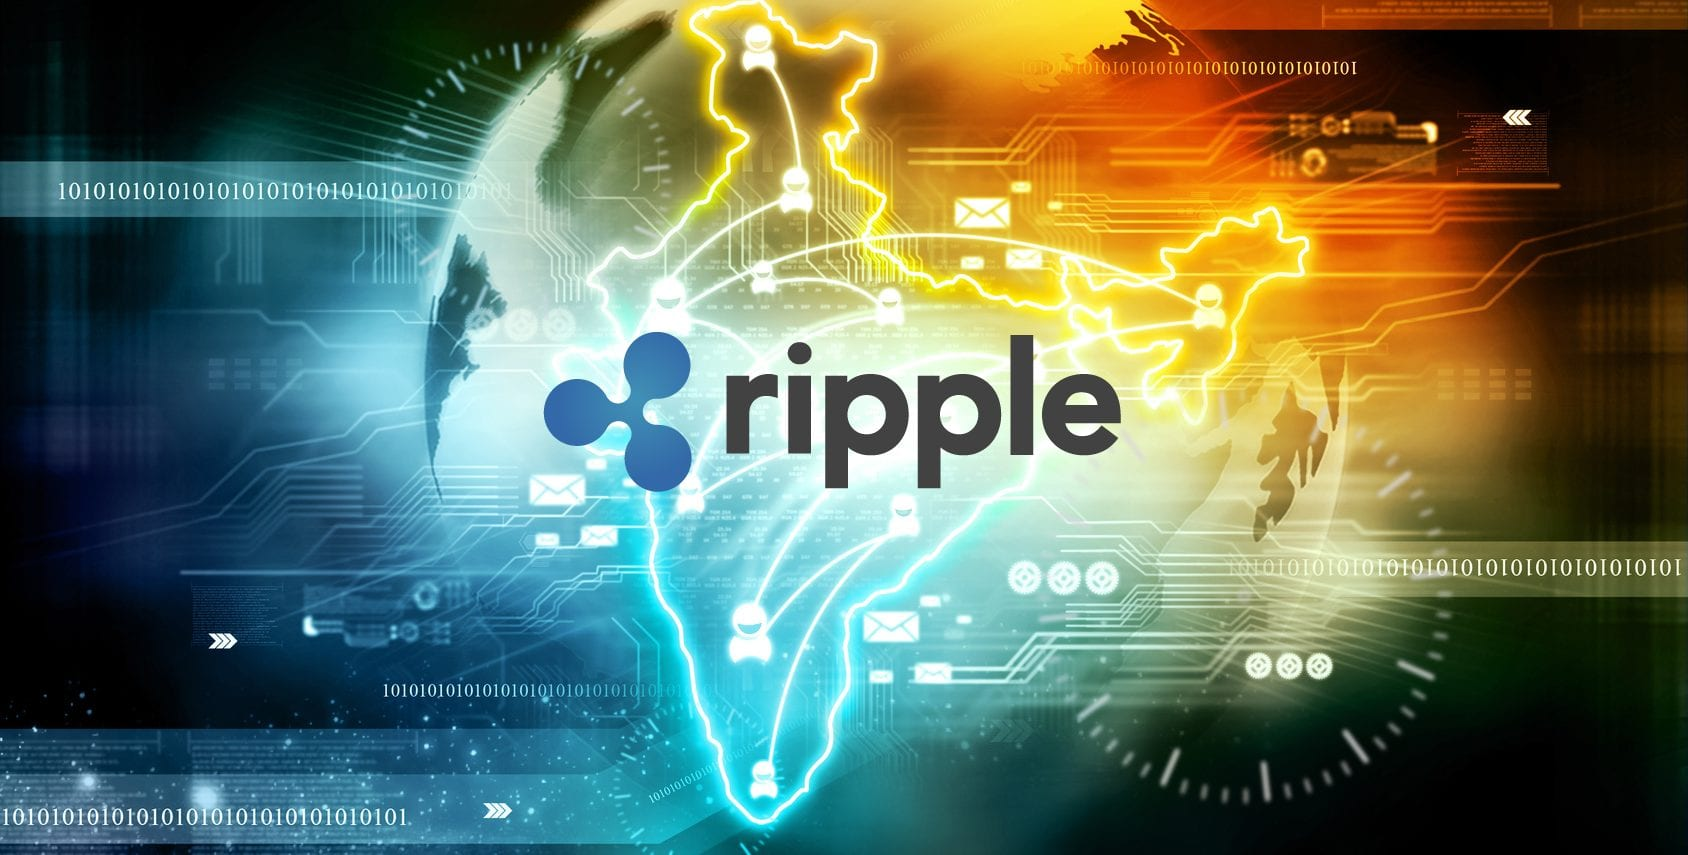 banknetwork - 2 Things that will make Ripple (XRP) Stay atop Beyond 2022